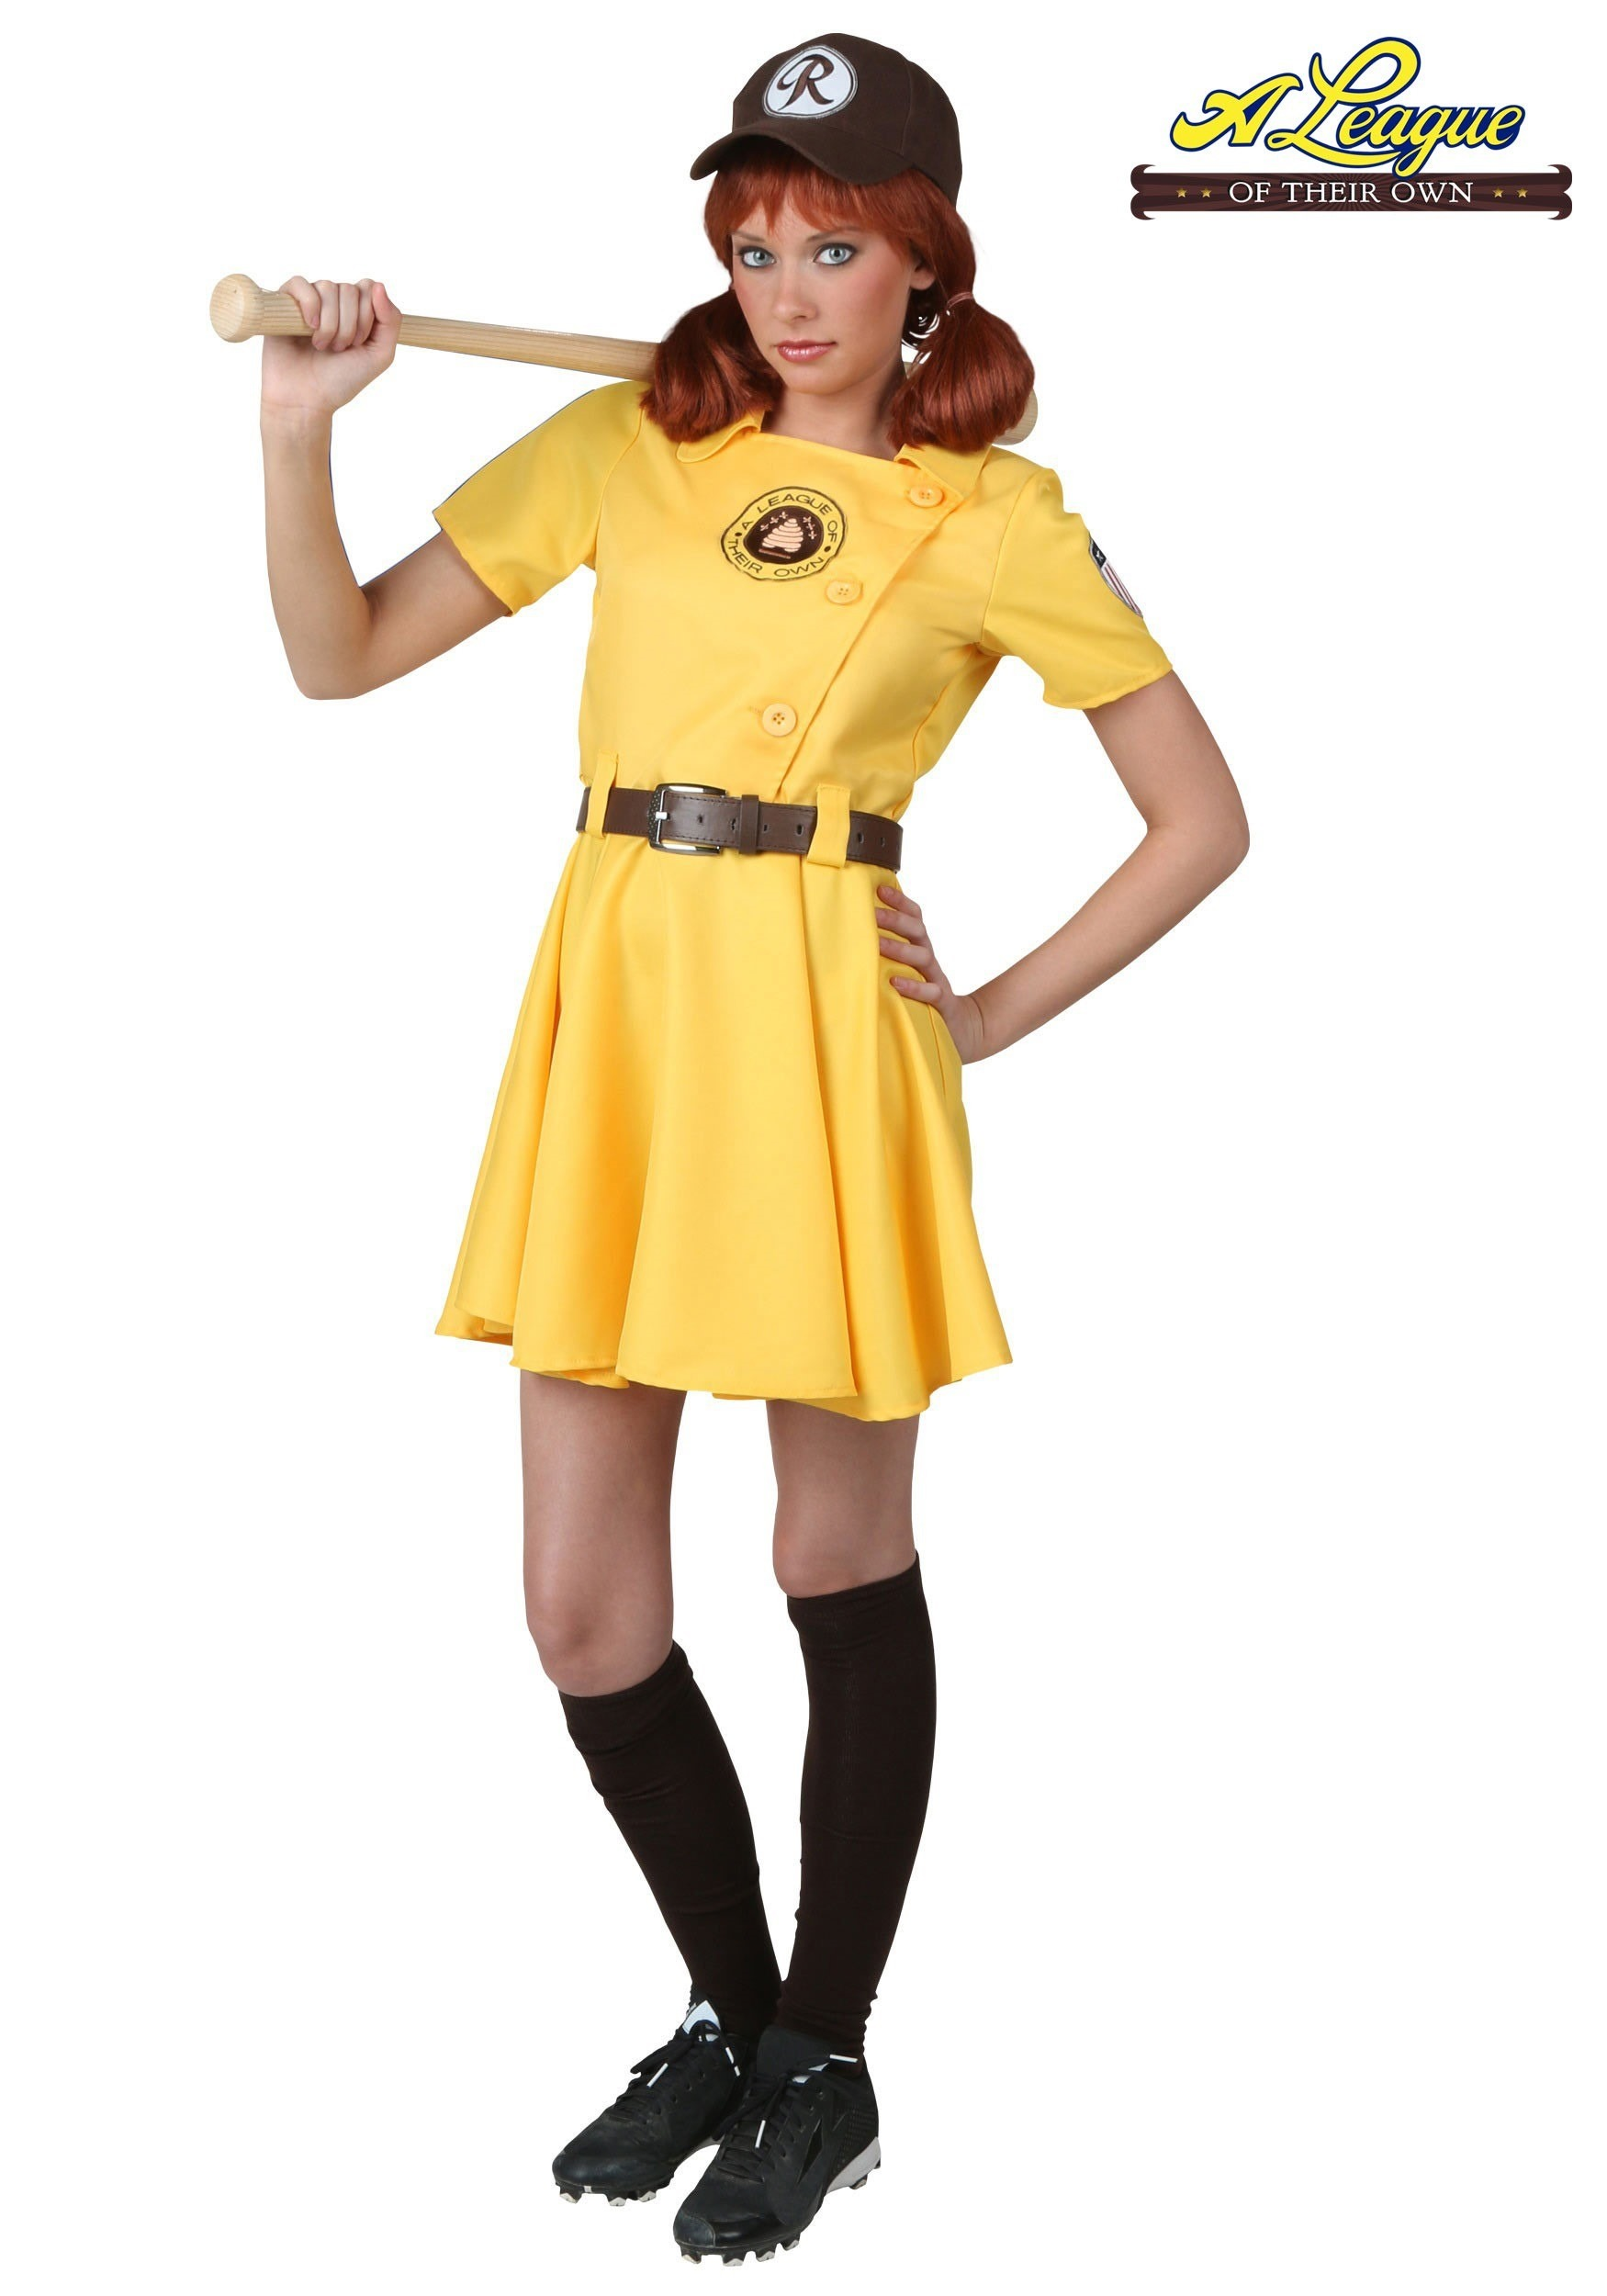 A League of Their Own Costumes - HalloweenCostumes.com  |A League Of Their Own Costume